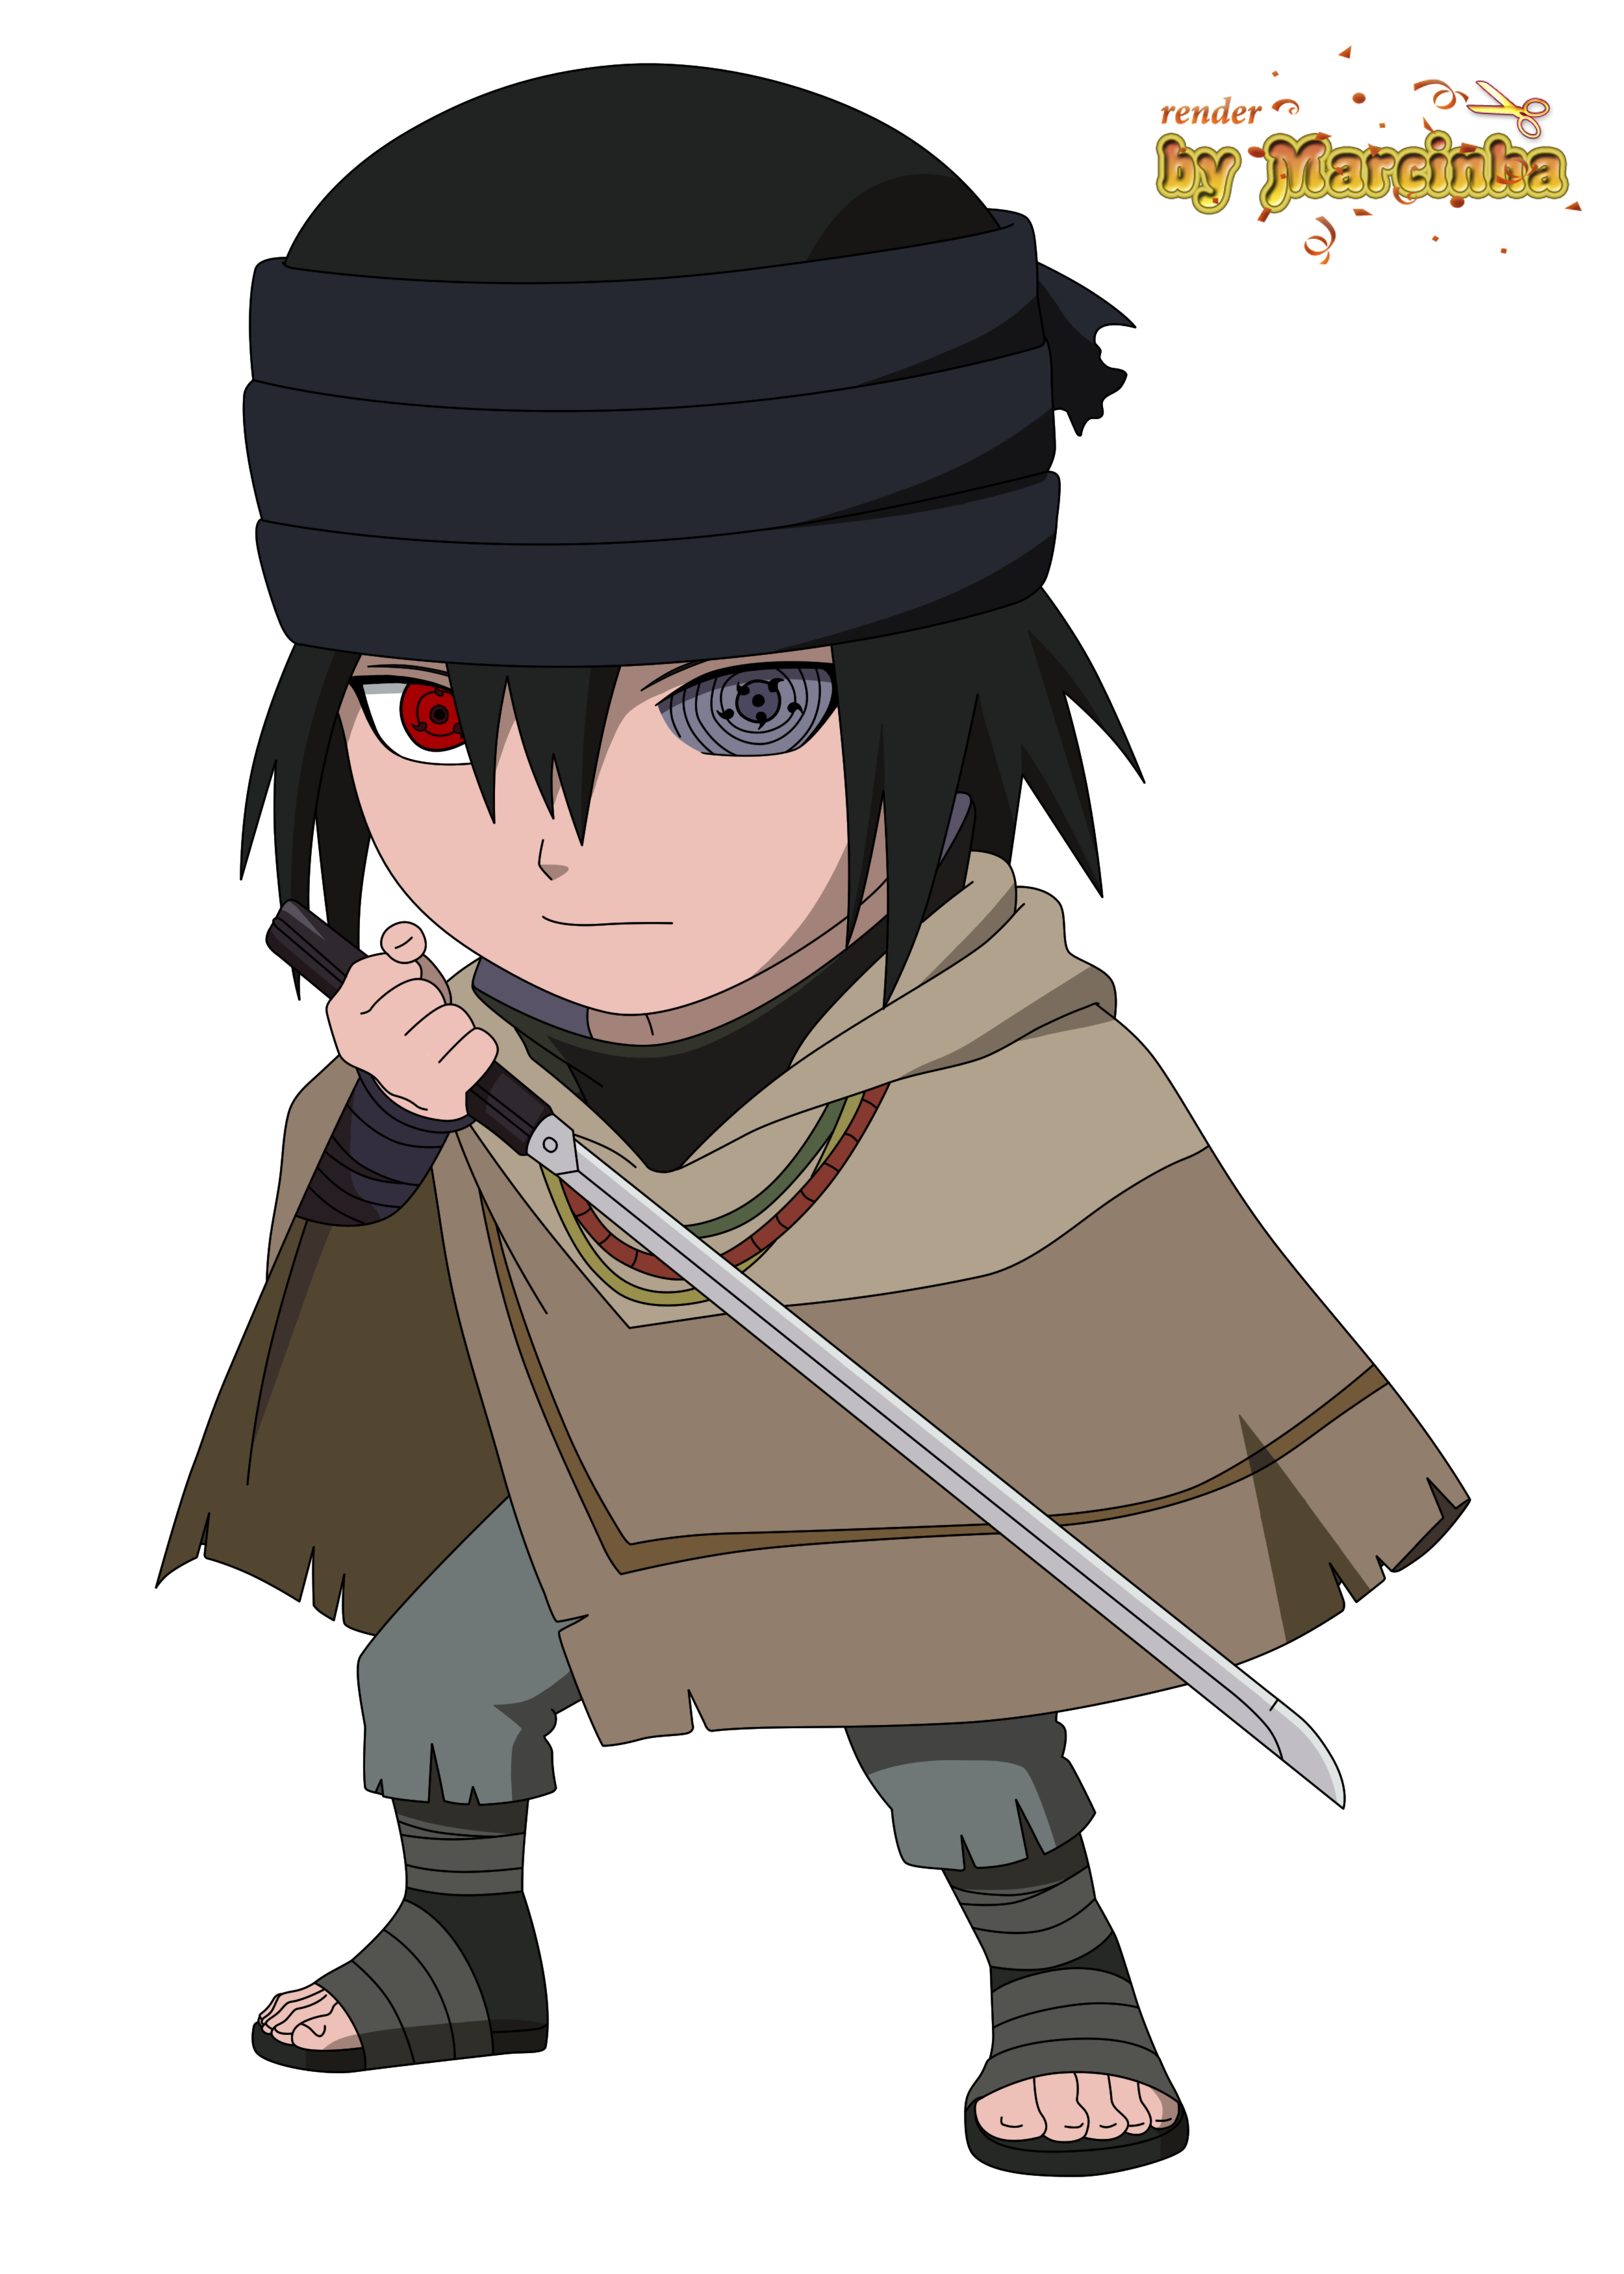 Chibi Sasuke The Last by Marcinha20 on DeviantArt